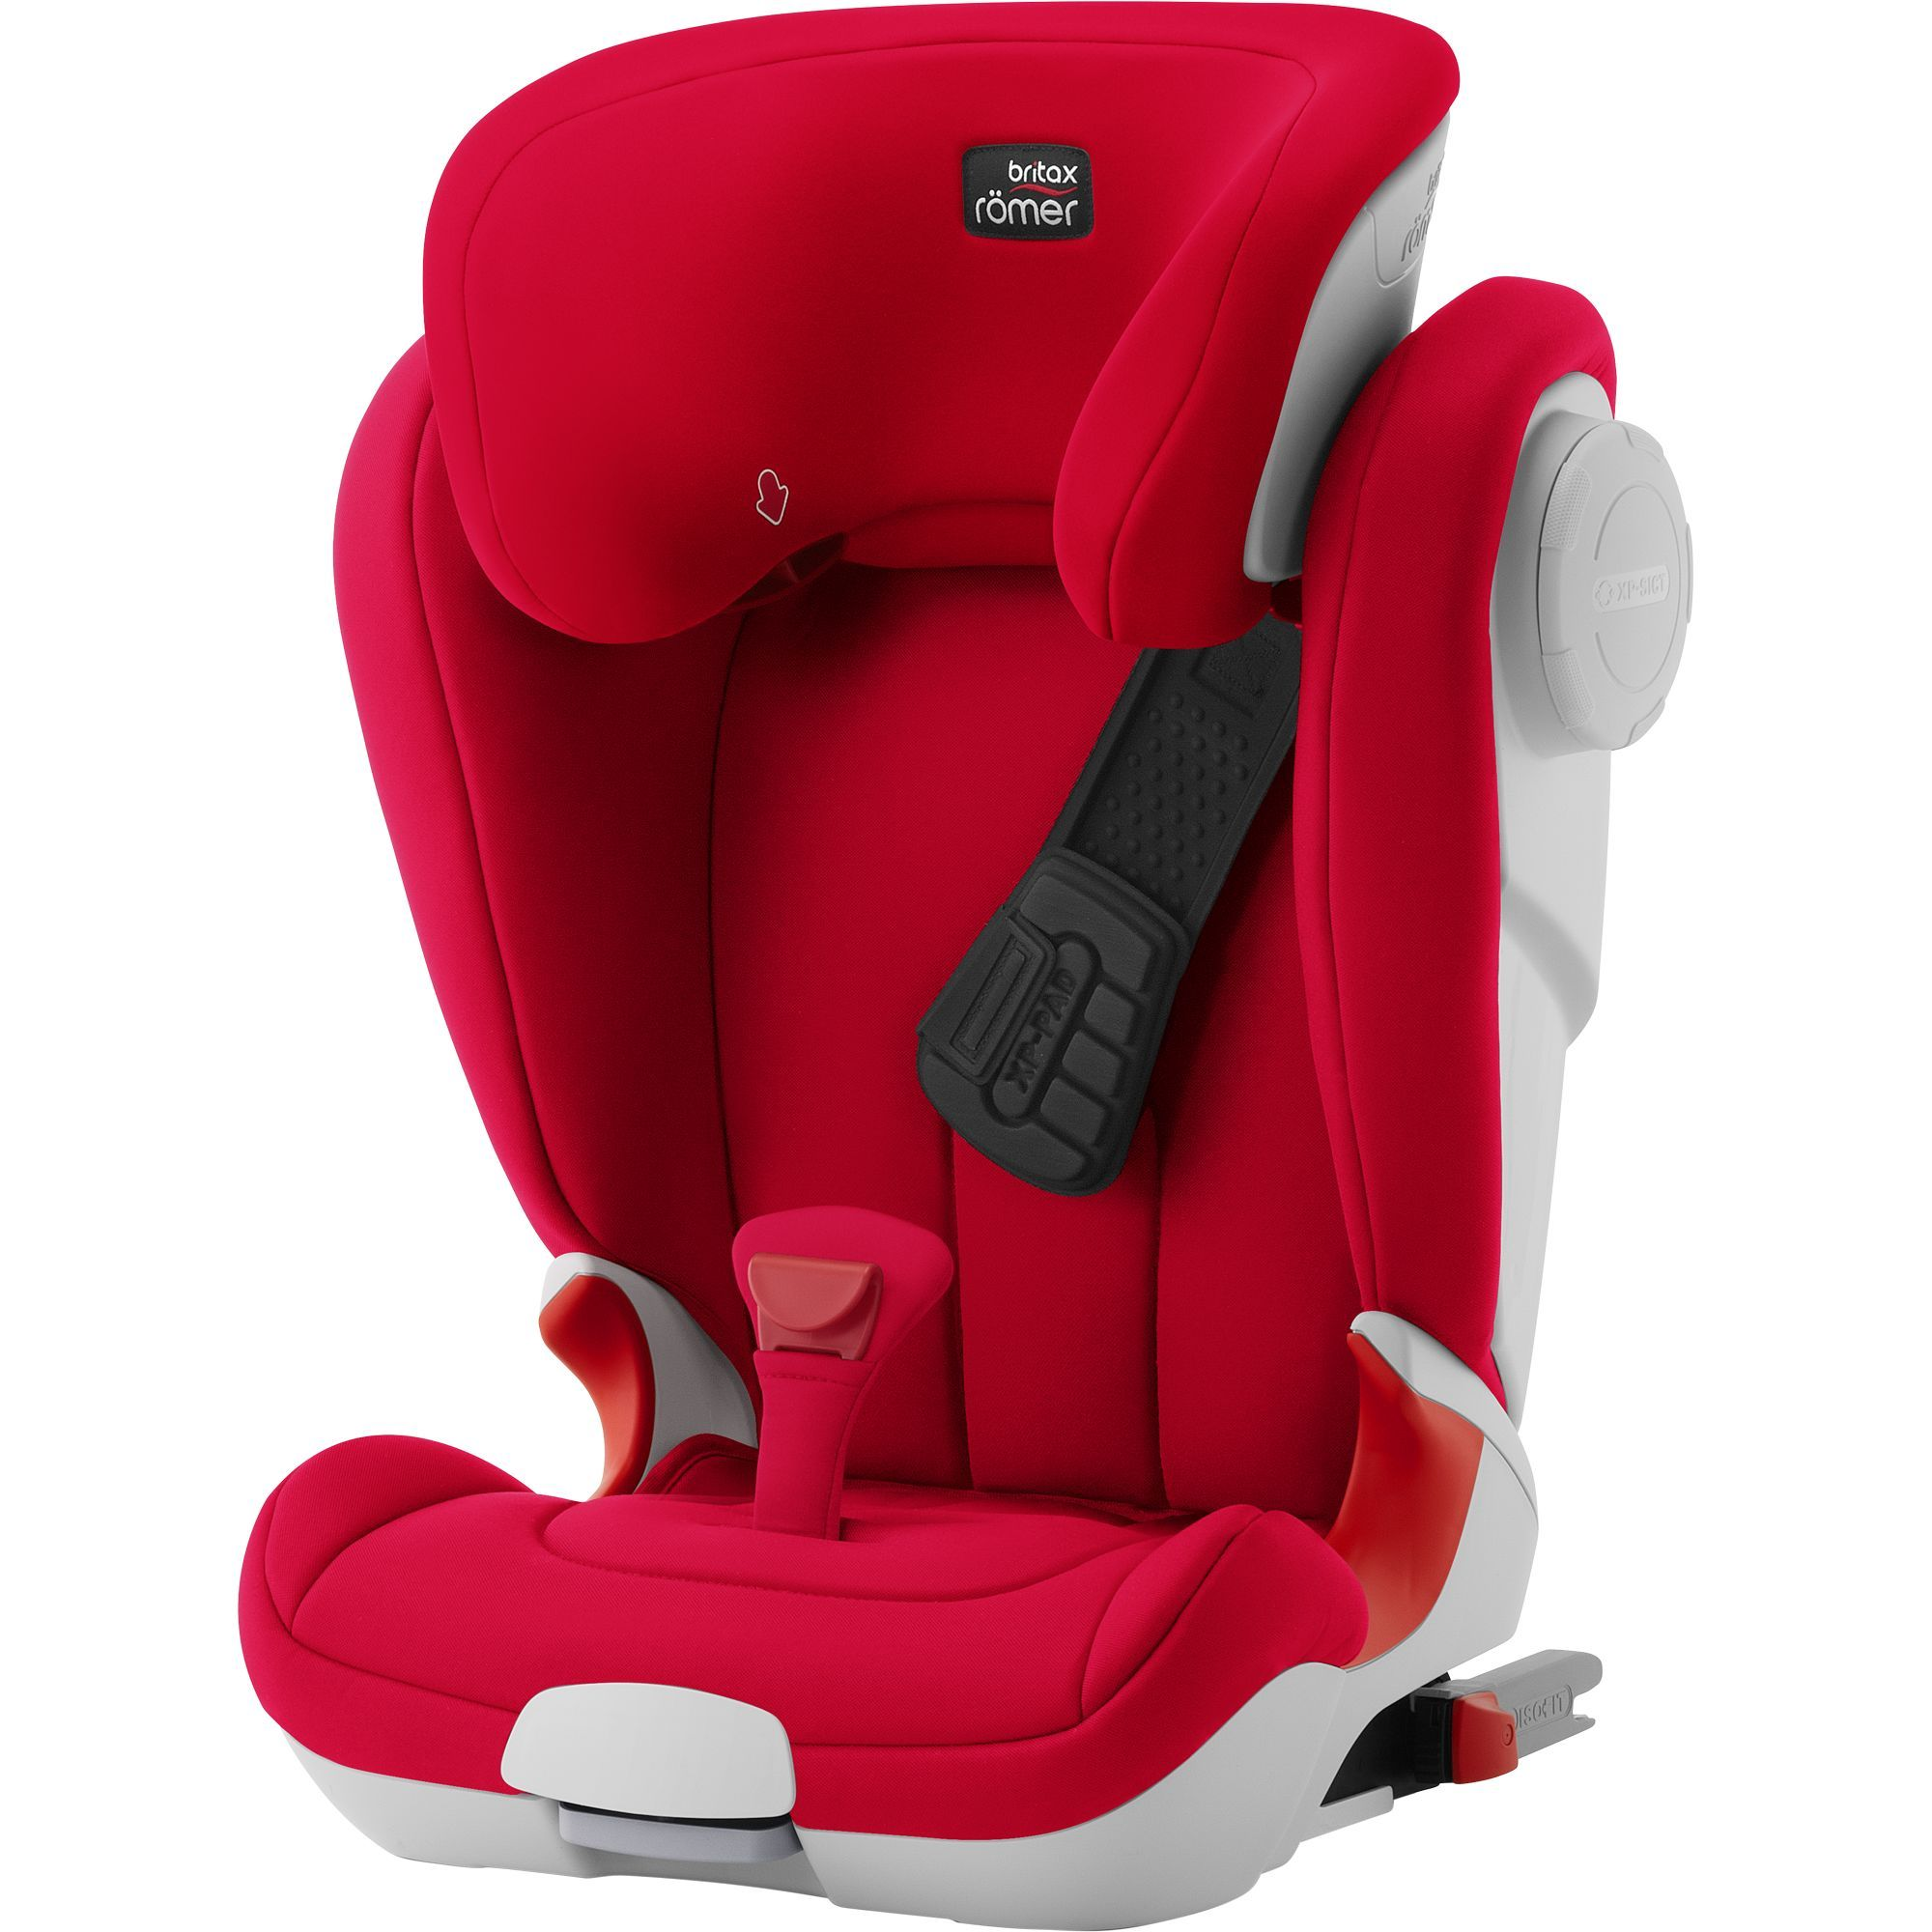 Romer Kidfix II XP SICT - Fire Red